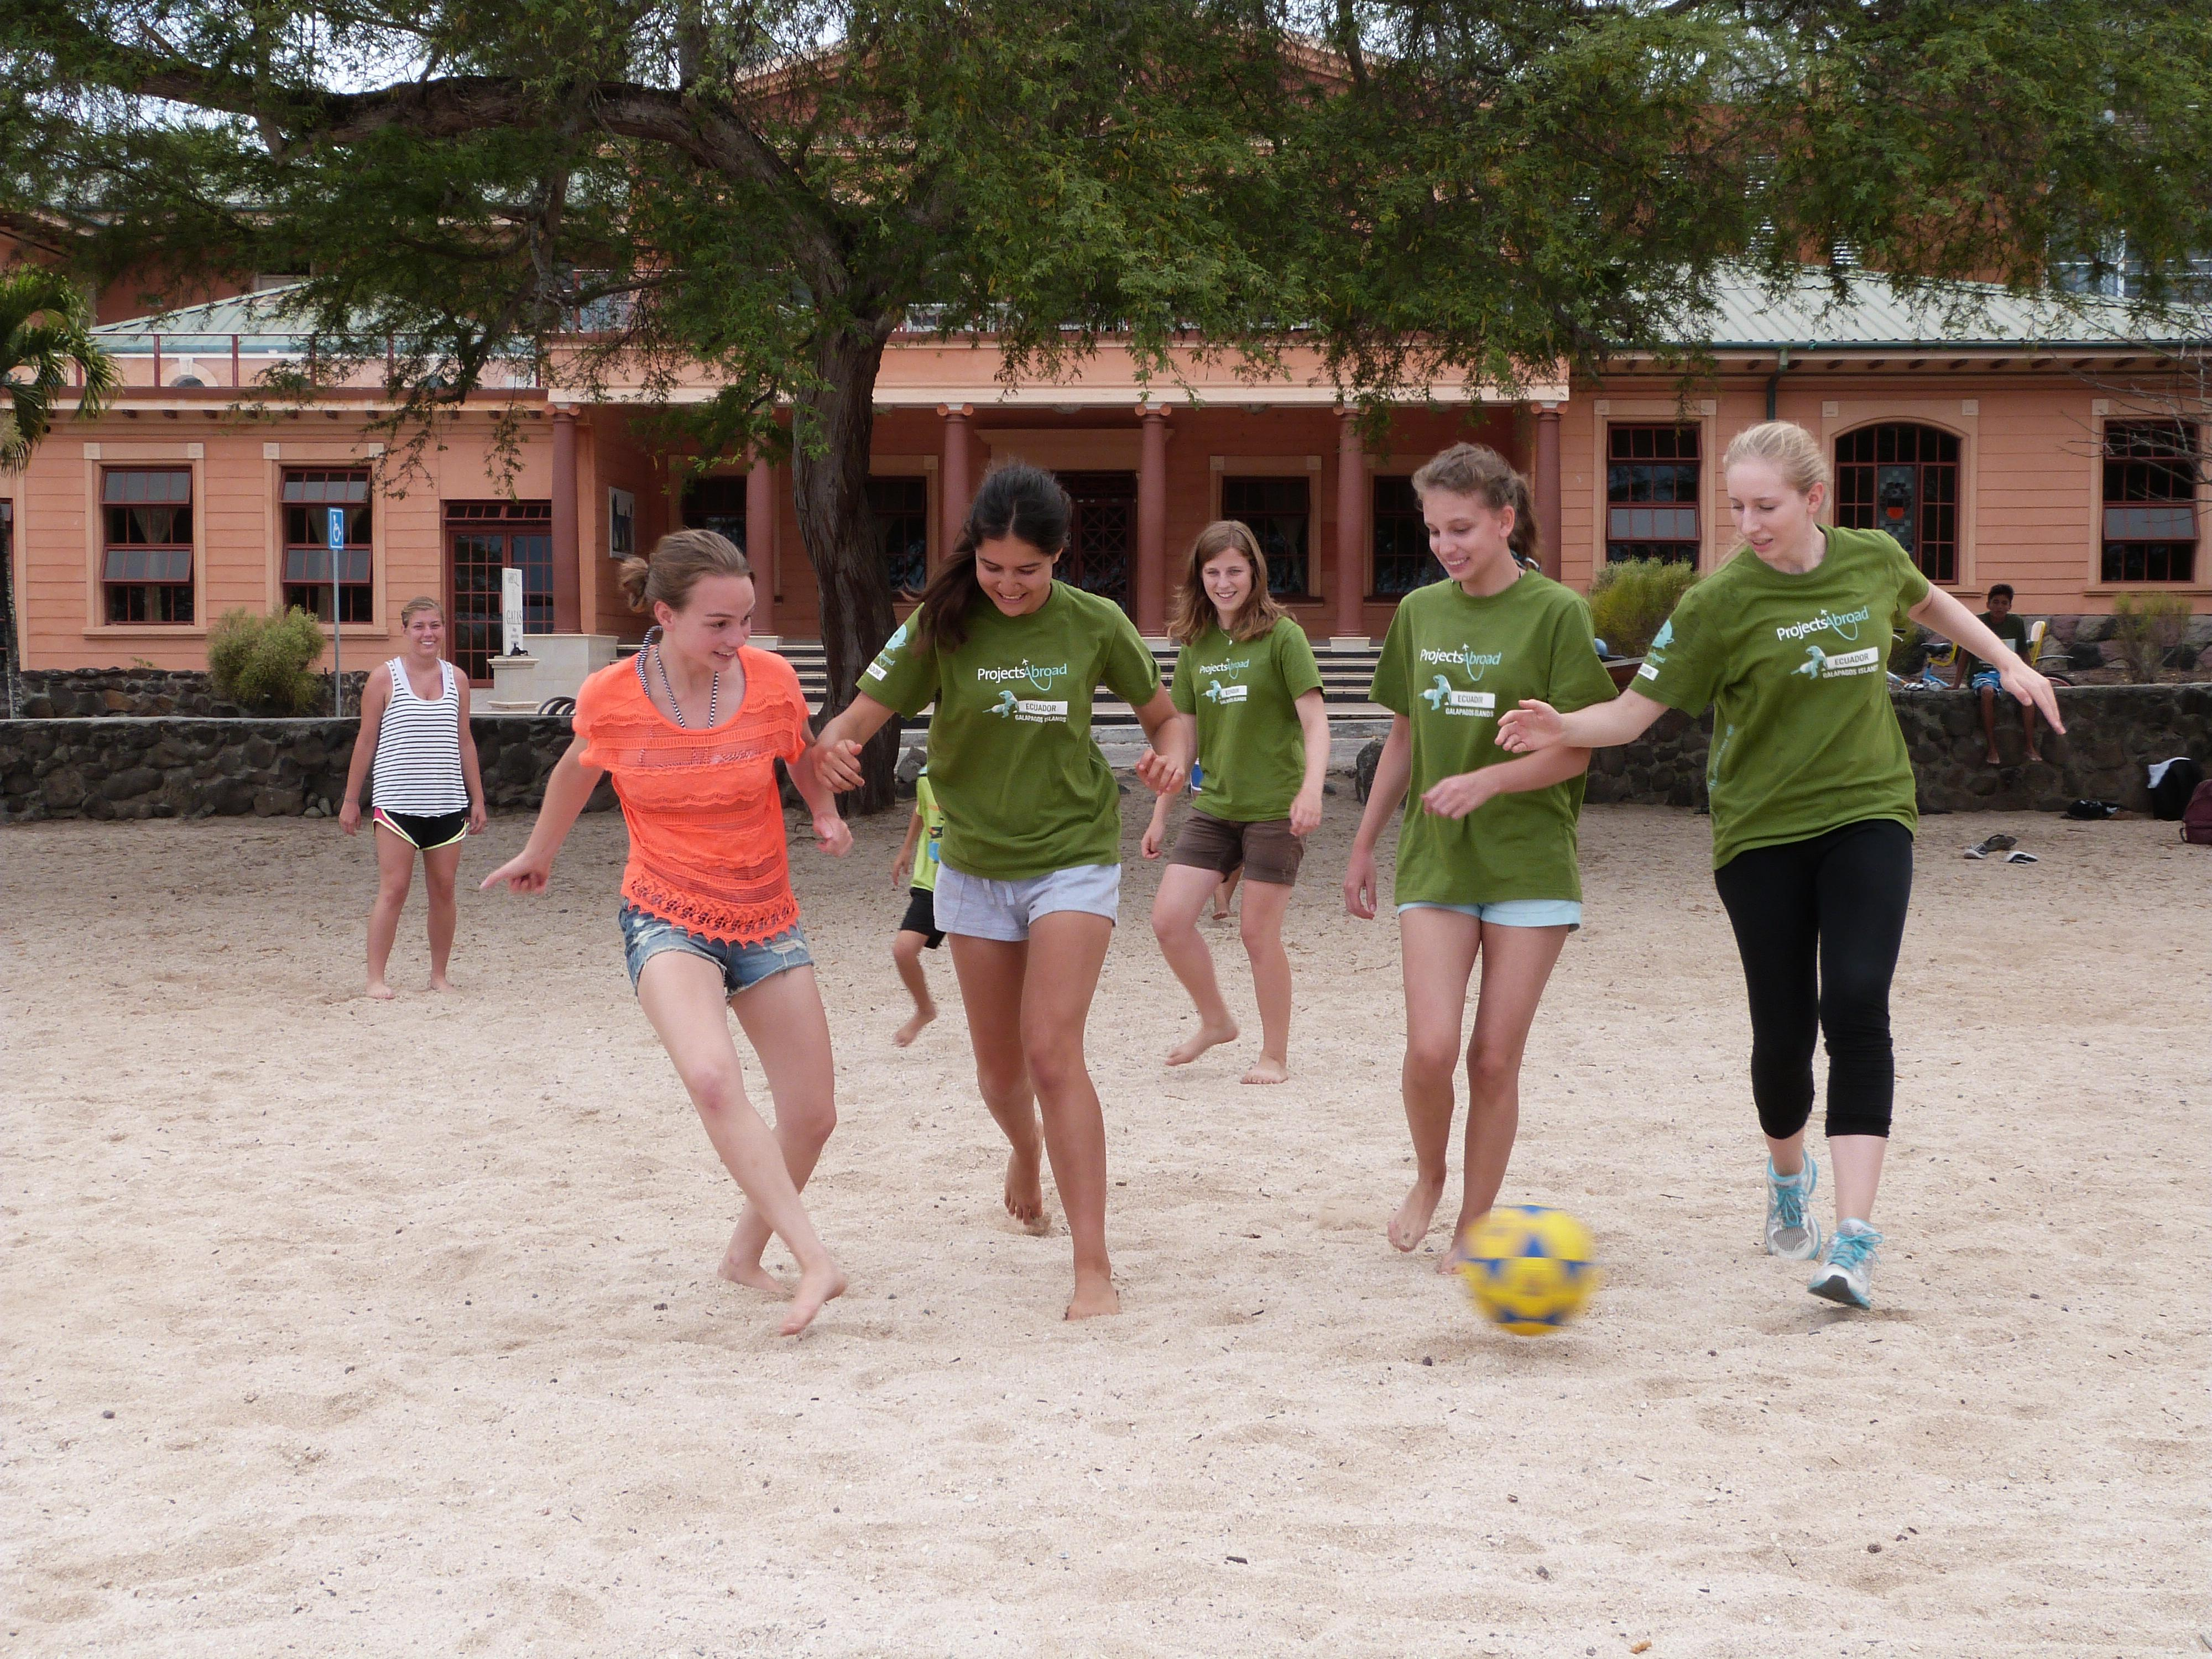 Volunteers play football and work in the Galapagos during Projects Abroad's programme for high school students